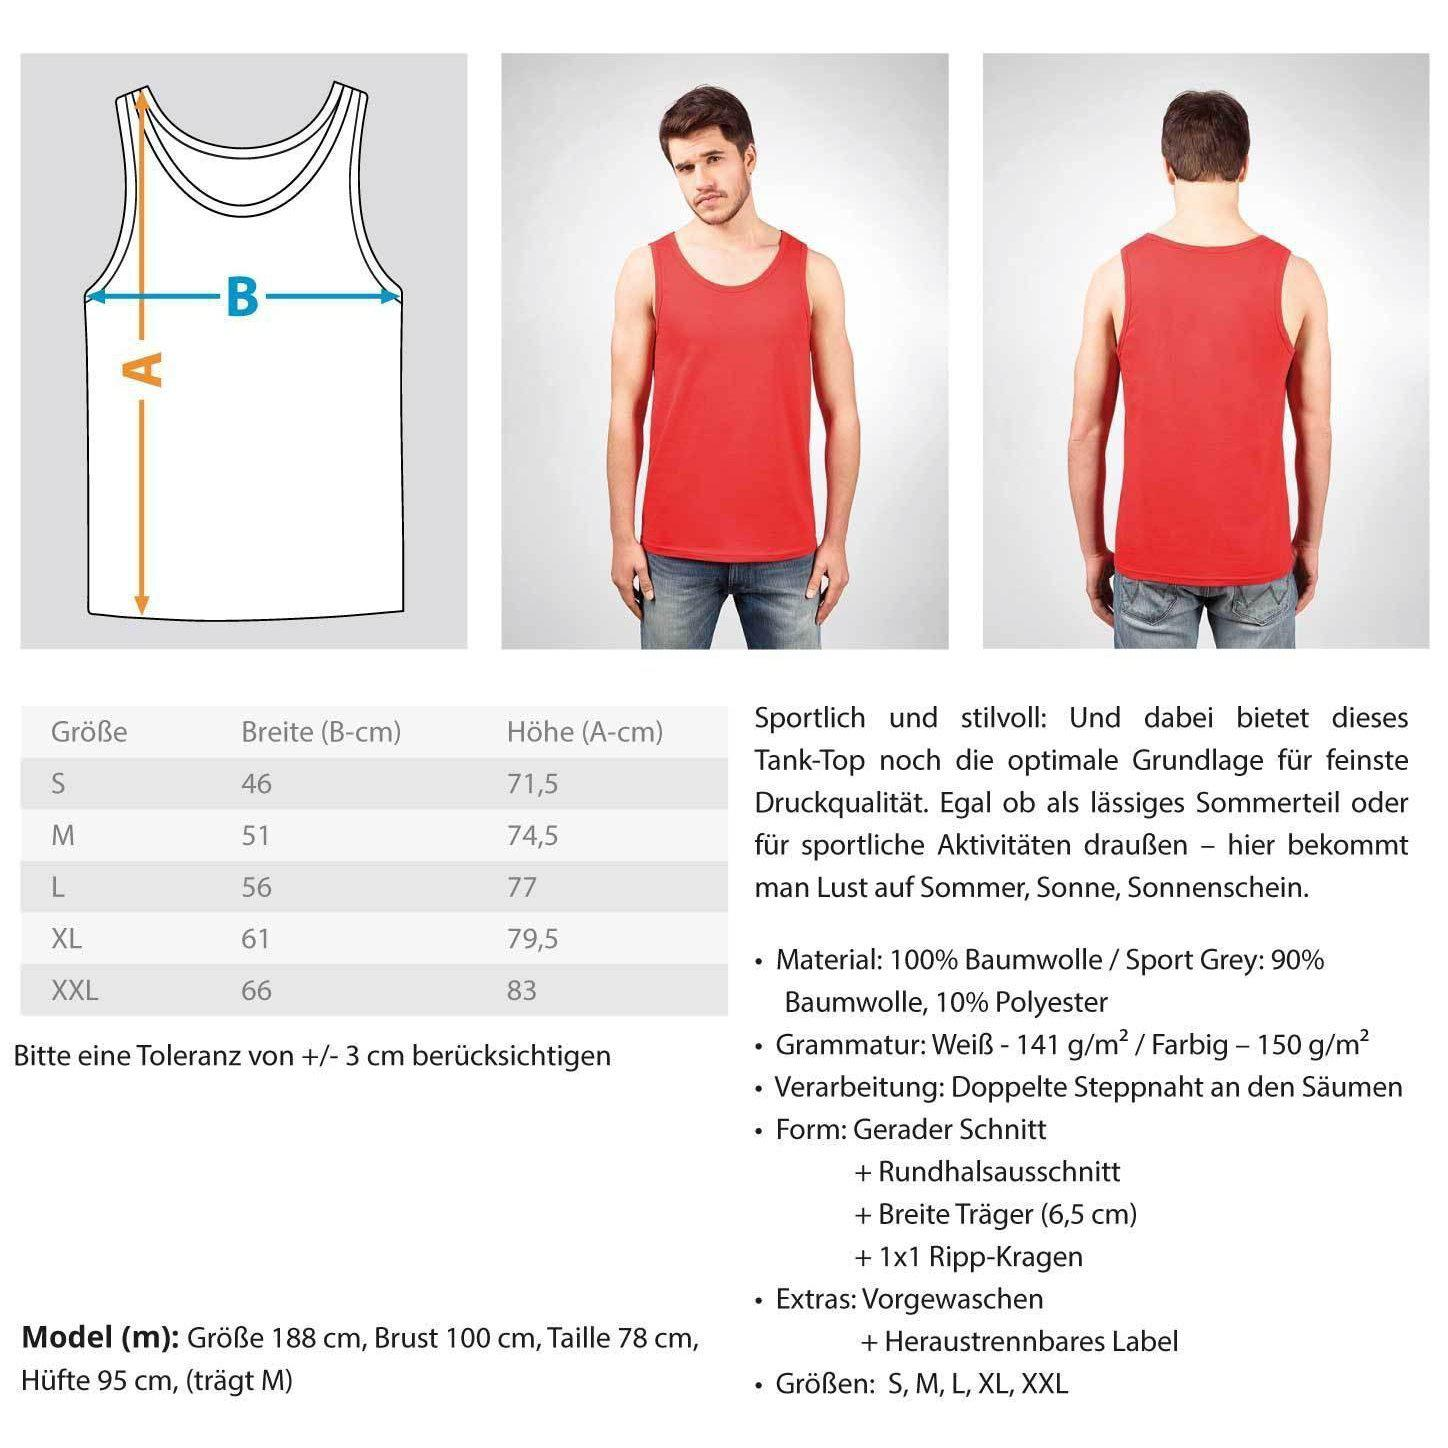 Rave On!® Bloody Graffity - Herren Tanktop Herren Tank-Top - Rave On!® der Club & Techno Szene Shop für Coole Junge Mode Streetwear Style & Fashion Outfits + Sexy Festival 420 Stuff